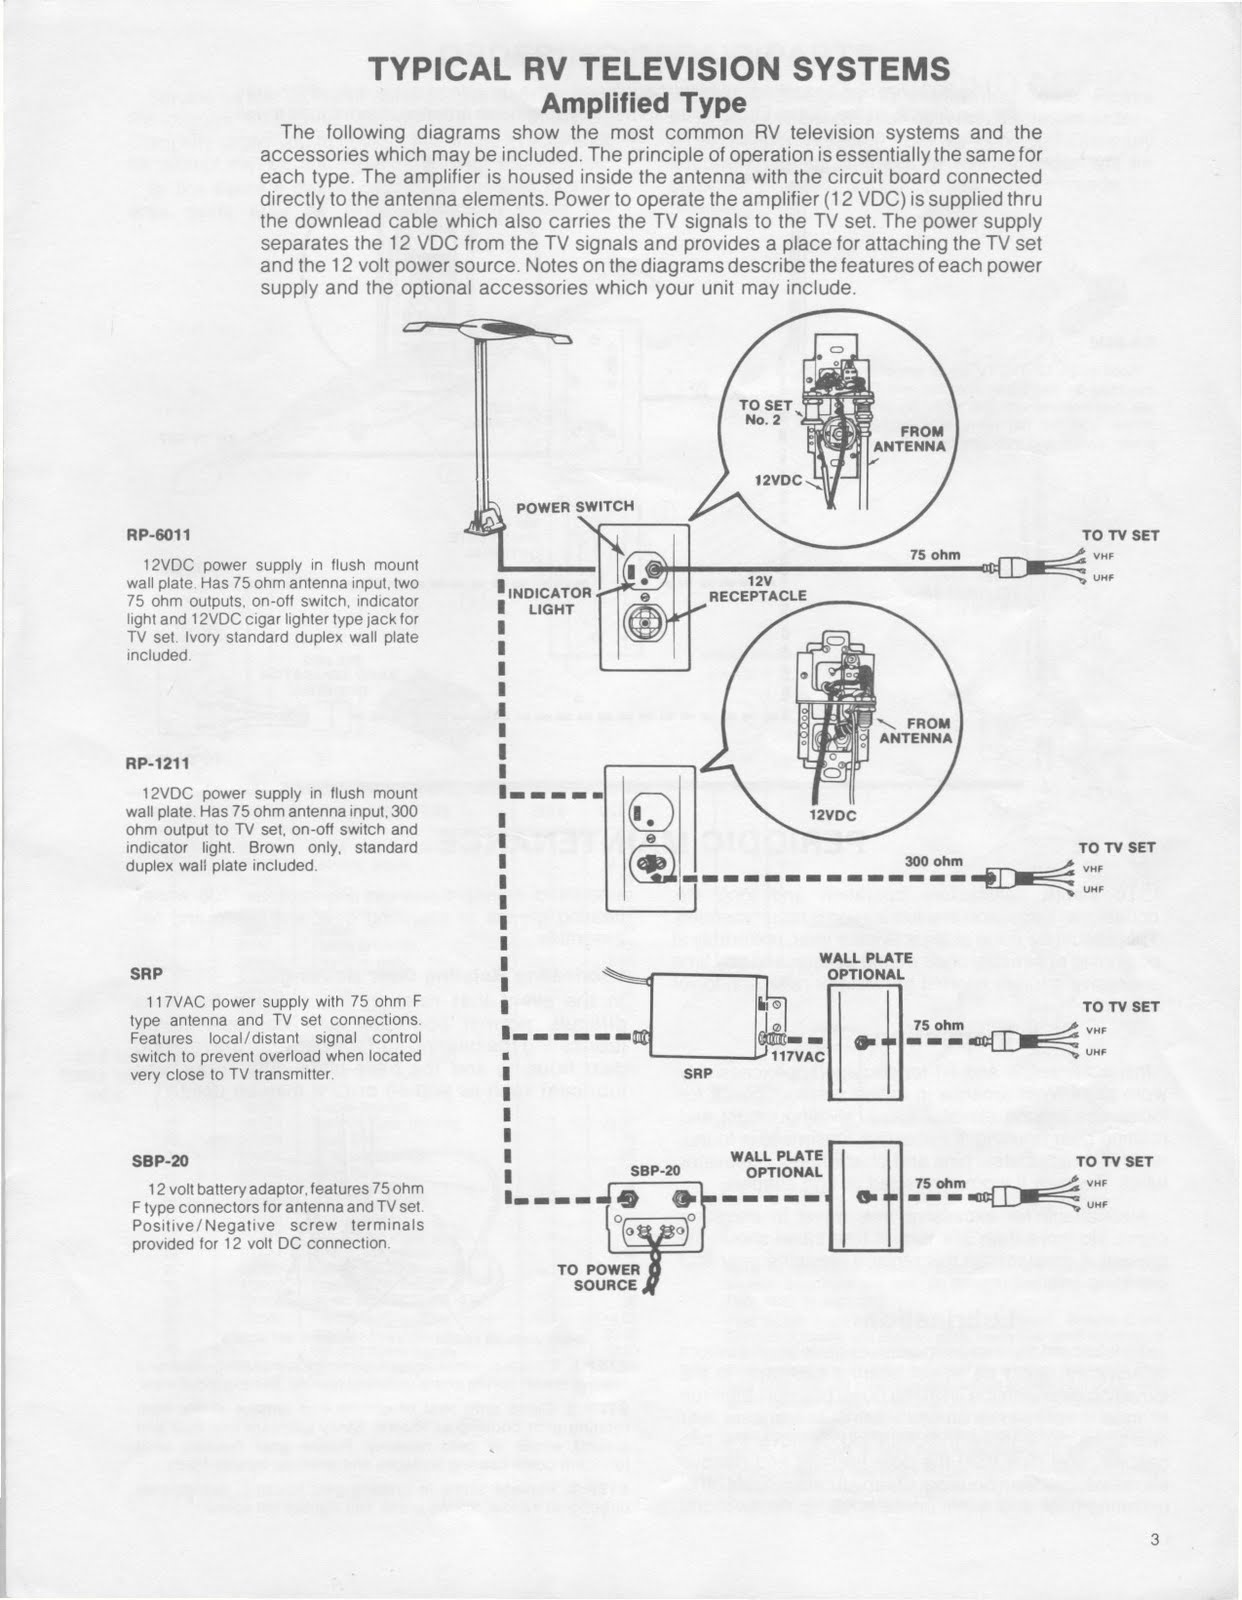 winegard rv antenna wiring diagram 1983 fleetwood pace arrow owners manuals    winegard       rv    tv  1983 fleetwood pace arrow owners manuals    winegard       rv    tv